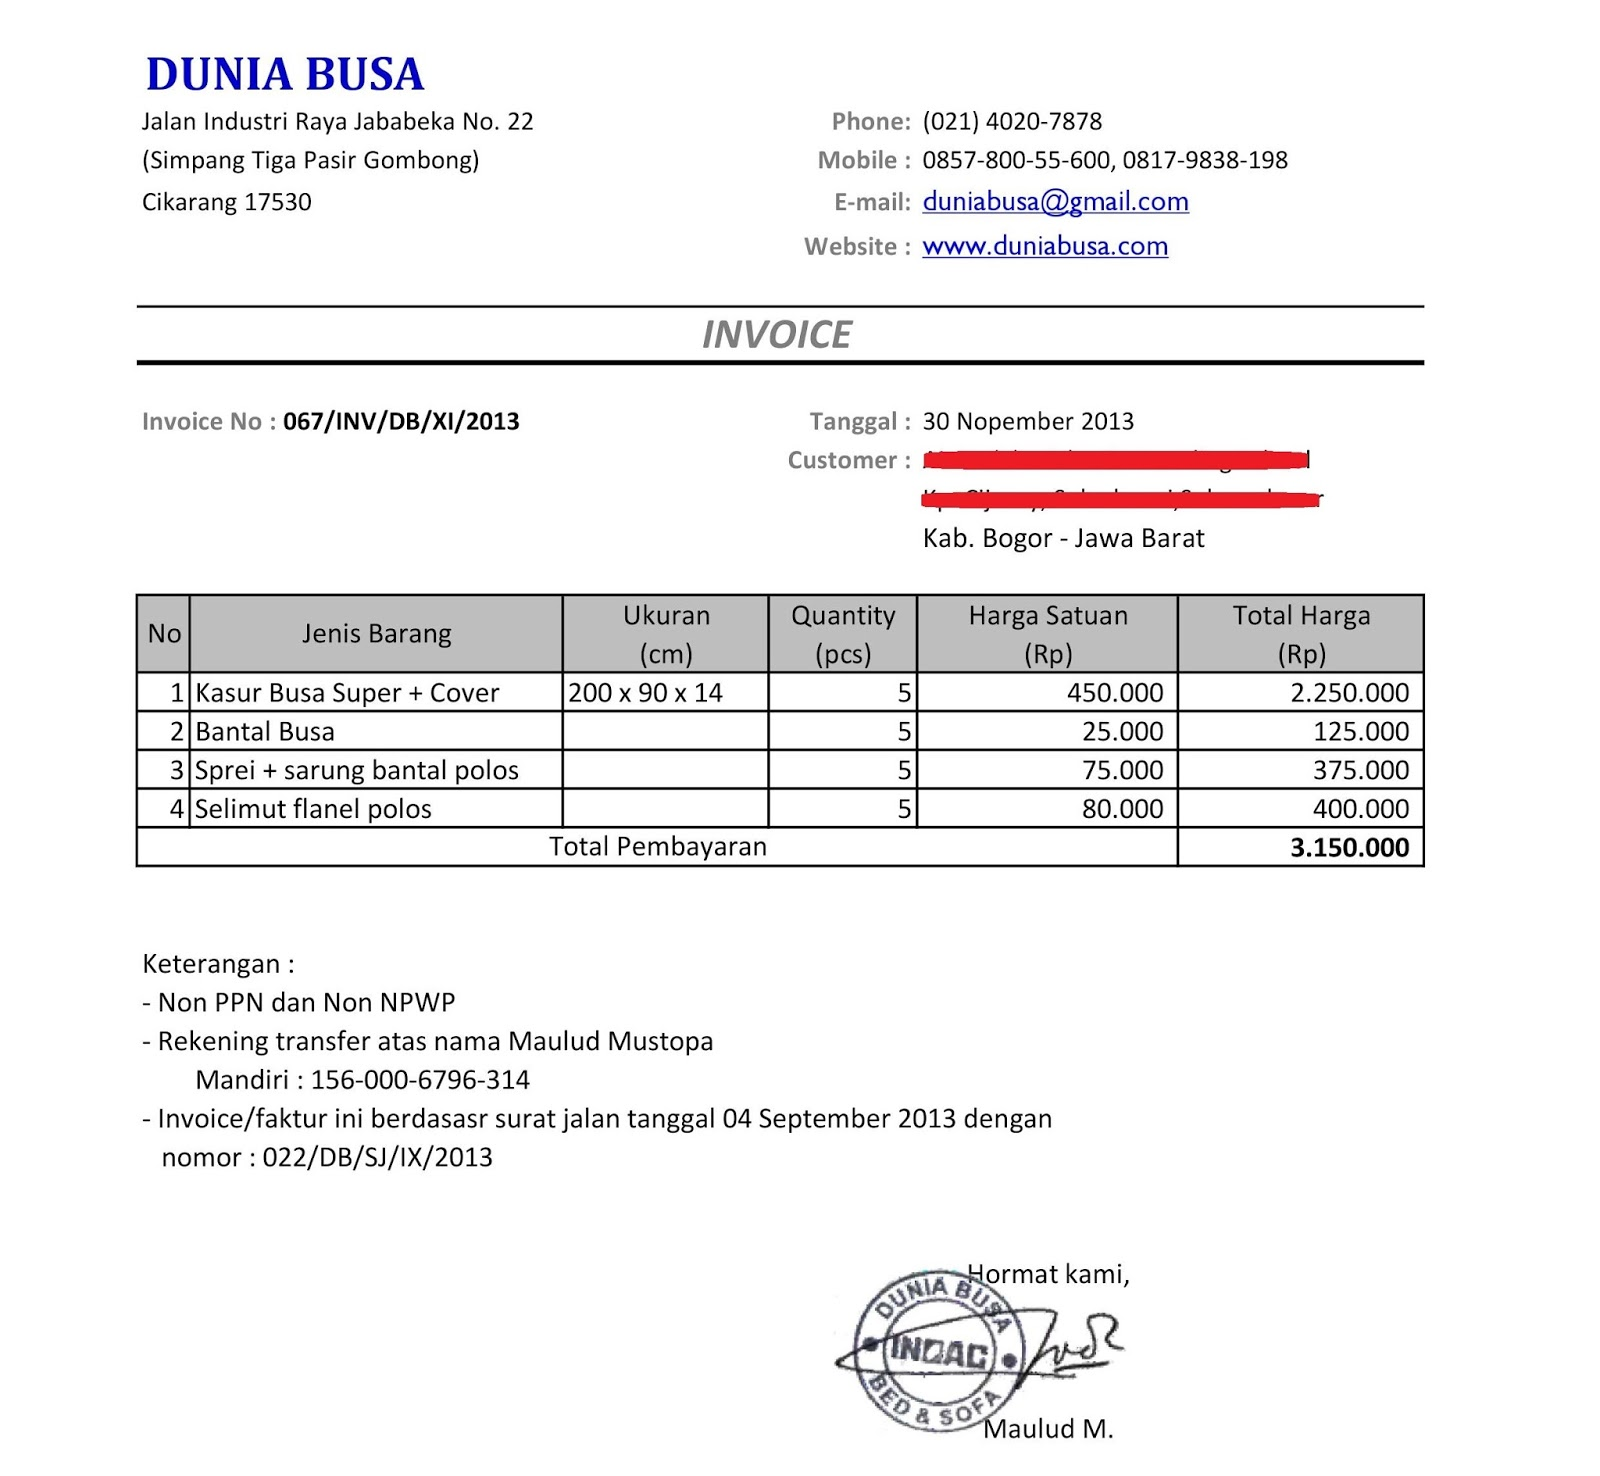 Usdgus  Terrific Free Invoice Online  Create Invoice Online  Invoice Template  With Great Contoh Format Invoice Atau Surat Tagihan  Brankas Arsip  Free Invoice Online With Amazing Intuit Invoicing Also Sample Invoice For Services Rendered In Addition Way Invoice Matching And Lawn Service Invoice Template As Well As Car Invoice Template Additionally Artist Invoice Template From Sklepco With Usdgus  Great Free Invoice Online  Create Invoice Online  Invoice Template  With Amazing Contoh Format Invoice Atau Surat Tagihan  Brankas Arsip  Free Invoice Online And Terrific Intuit Invoicing Also Sample Invoice For Services Rendered In Addition Way Invoice Matching From Sklepco